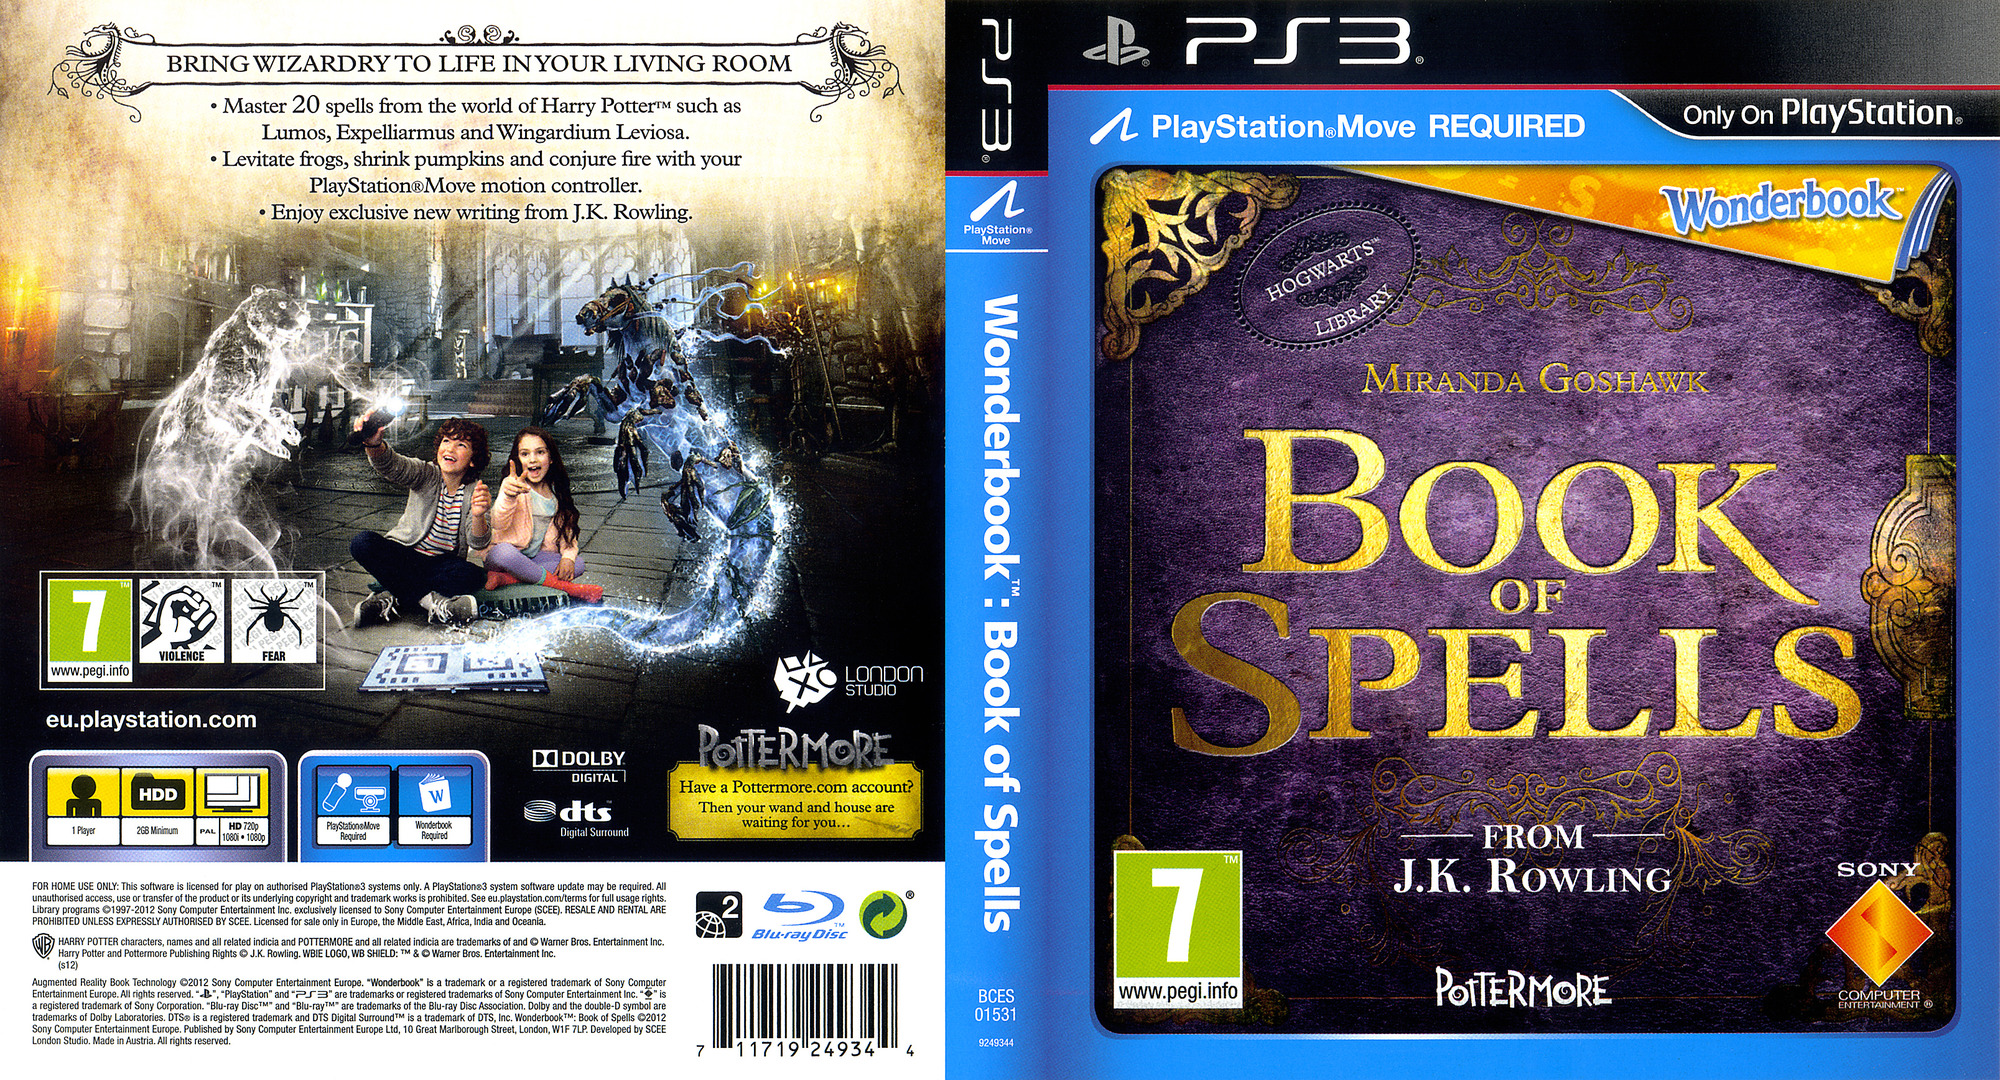 Wonderbook: Book of Spells PS3 coverfullHQ (BCES01531)